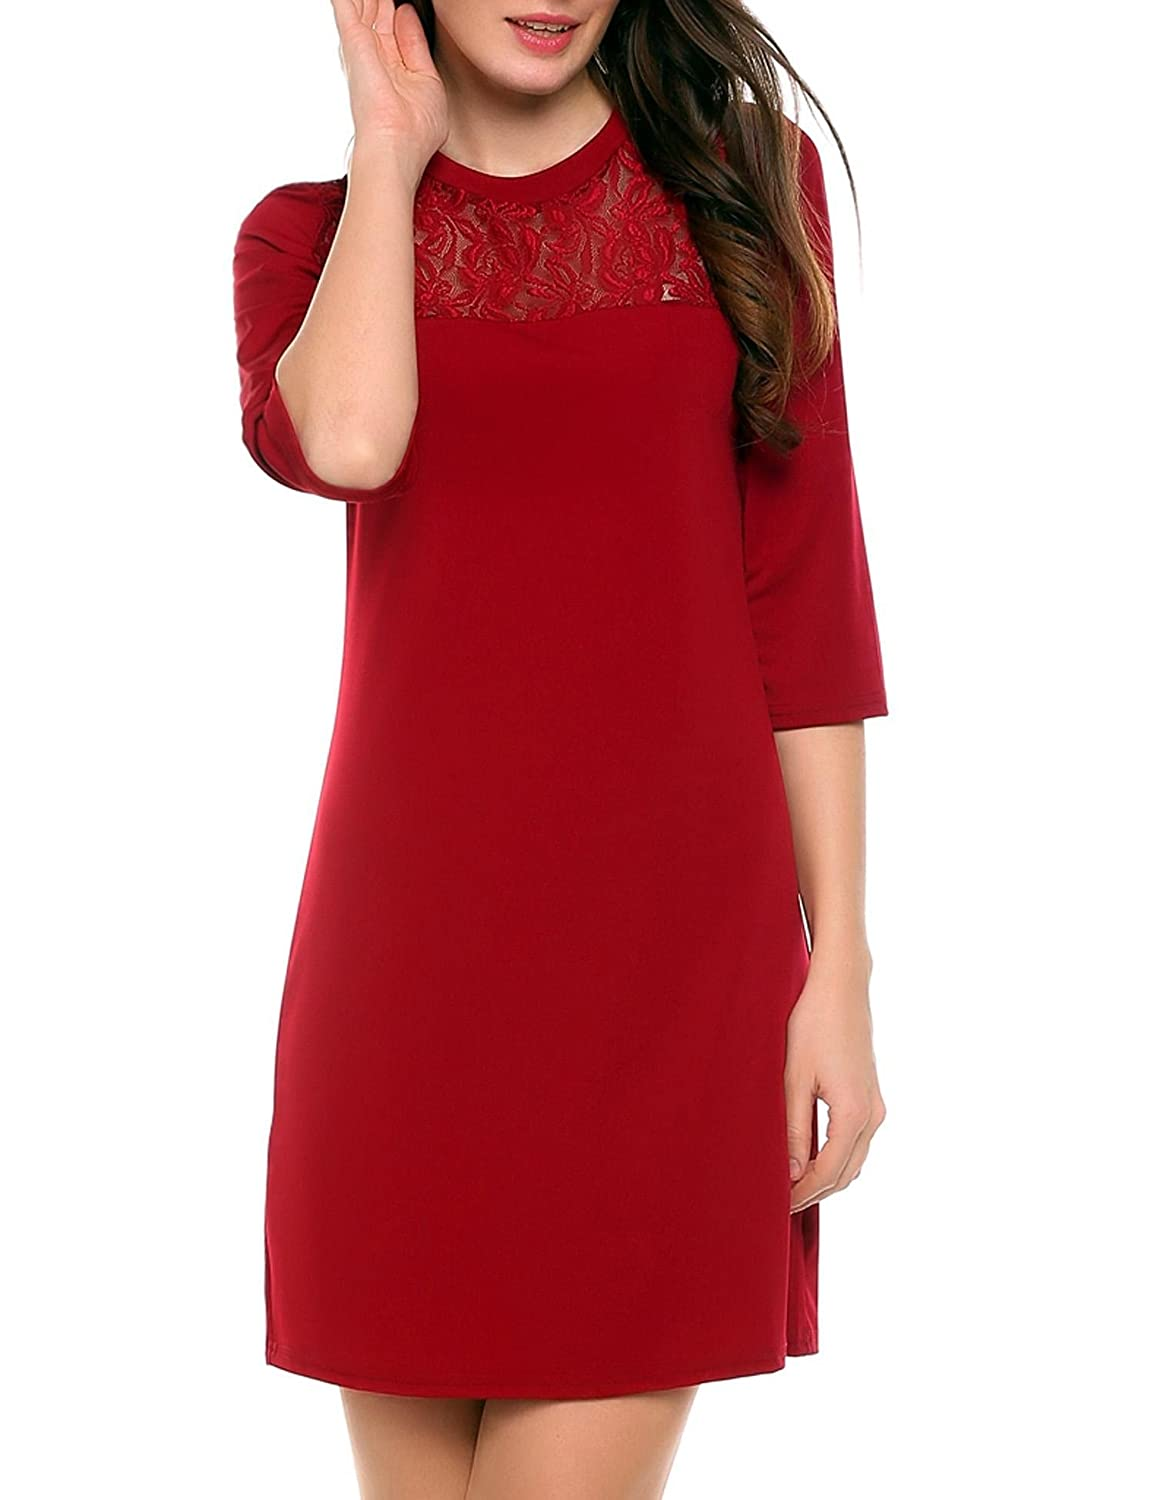 ACEVOG Women's 3/4 Sleeve Lace Patchwork Casual Tunic Shift Dress **AMH009116